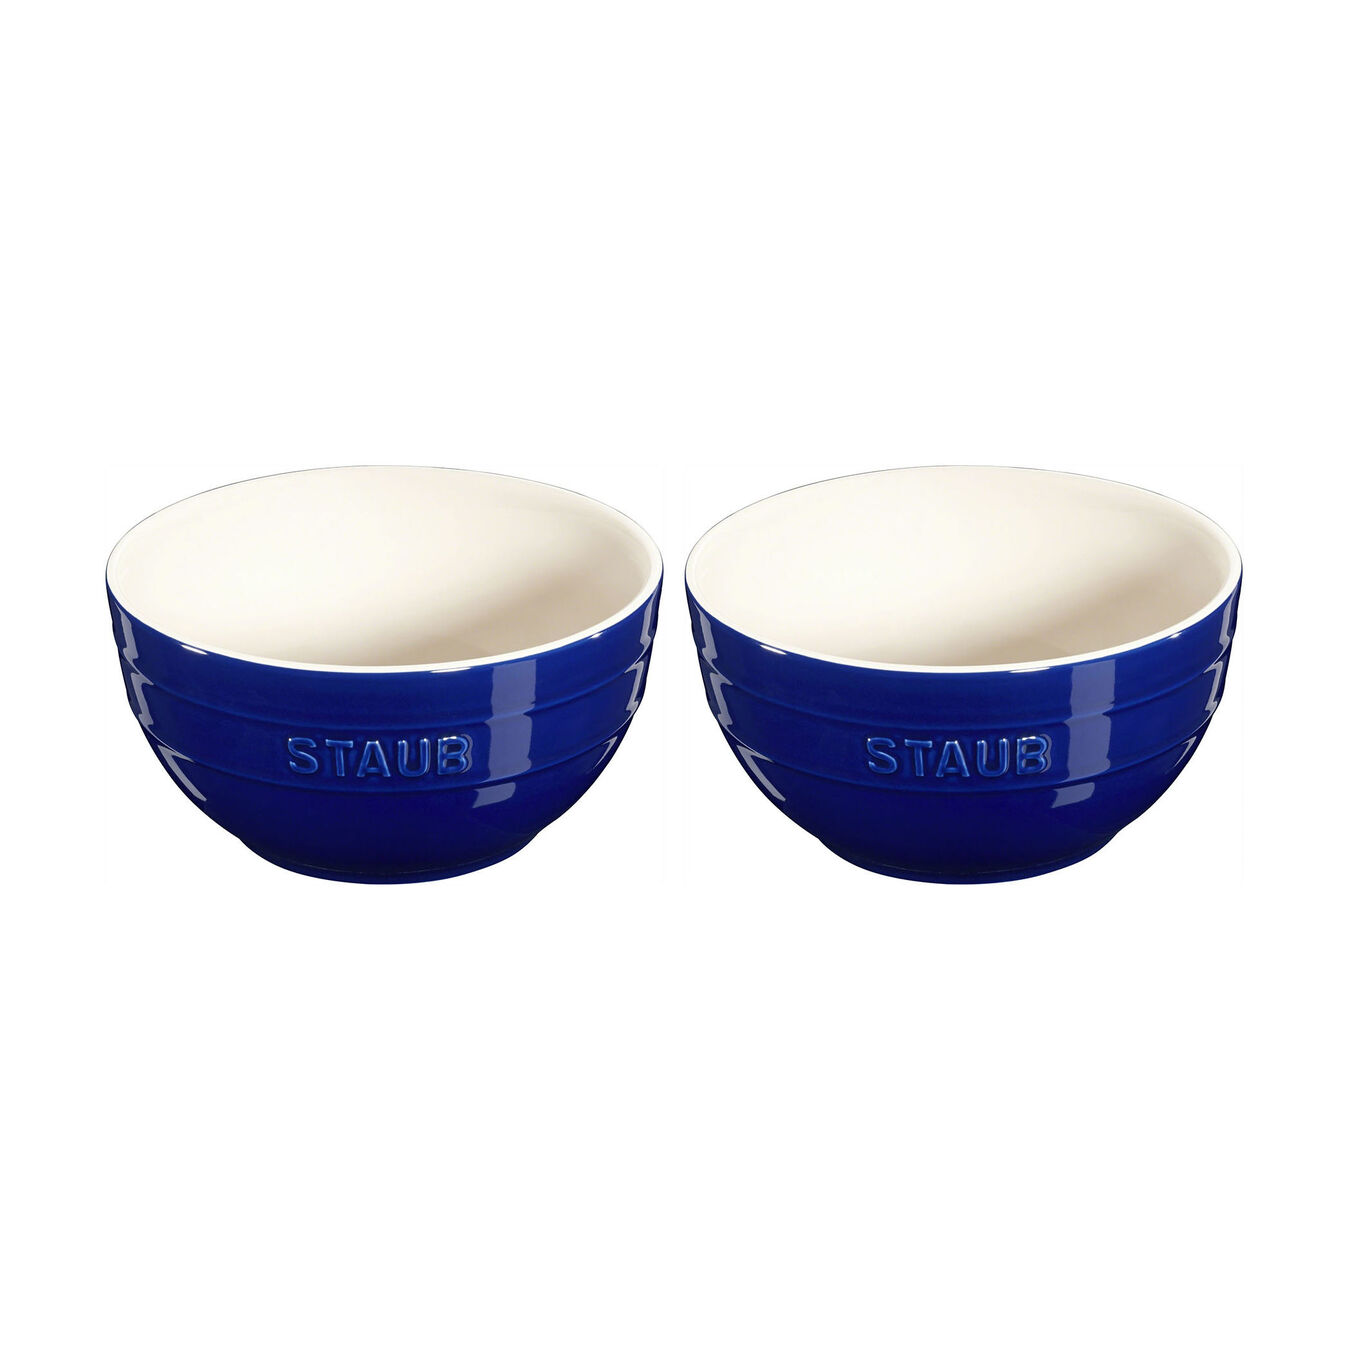 2-pc Large Universal Bowl Set - Dark Blue,,large 1